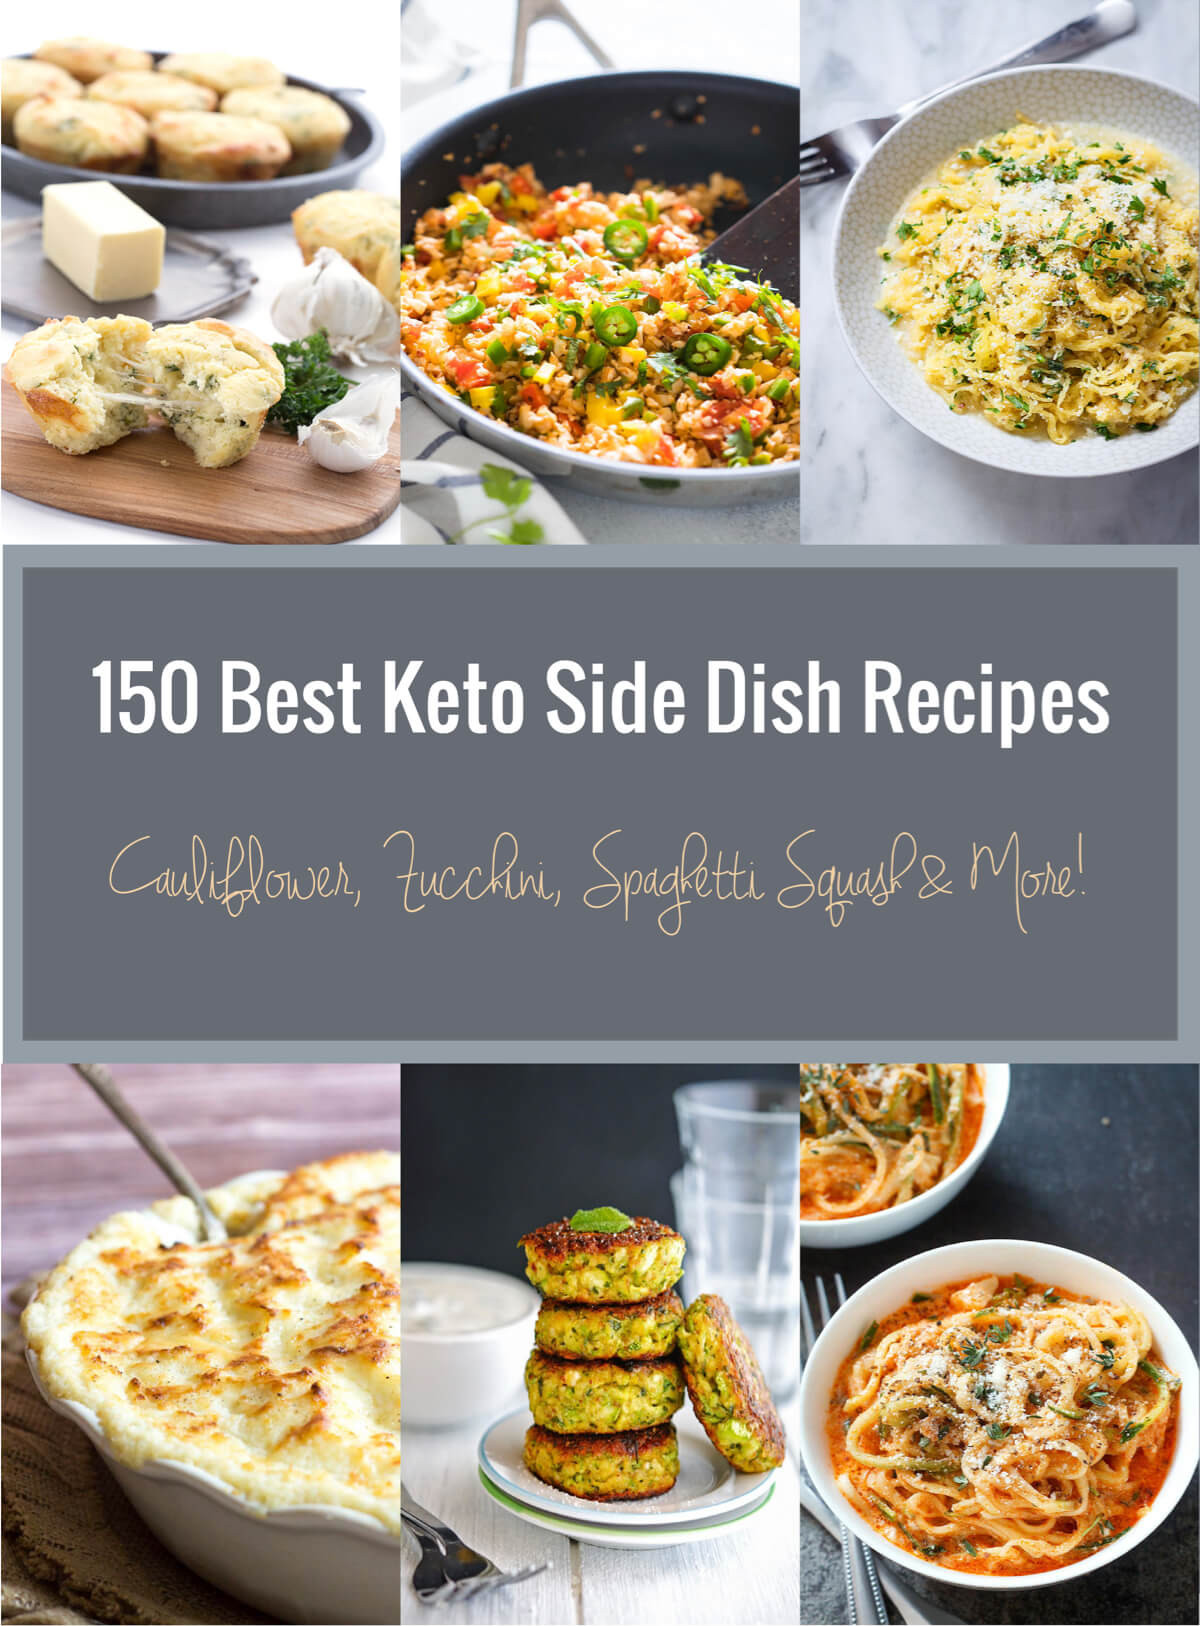 Keto Dinner Side Dishes  150 Best Keto Side Dish Recipes Low Carb